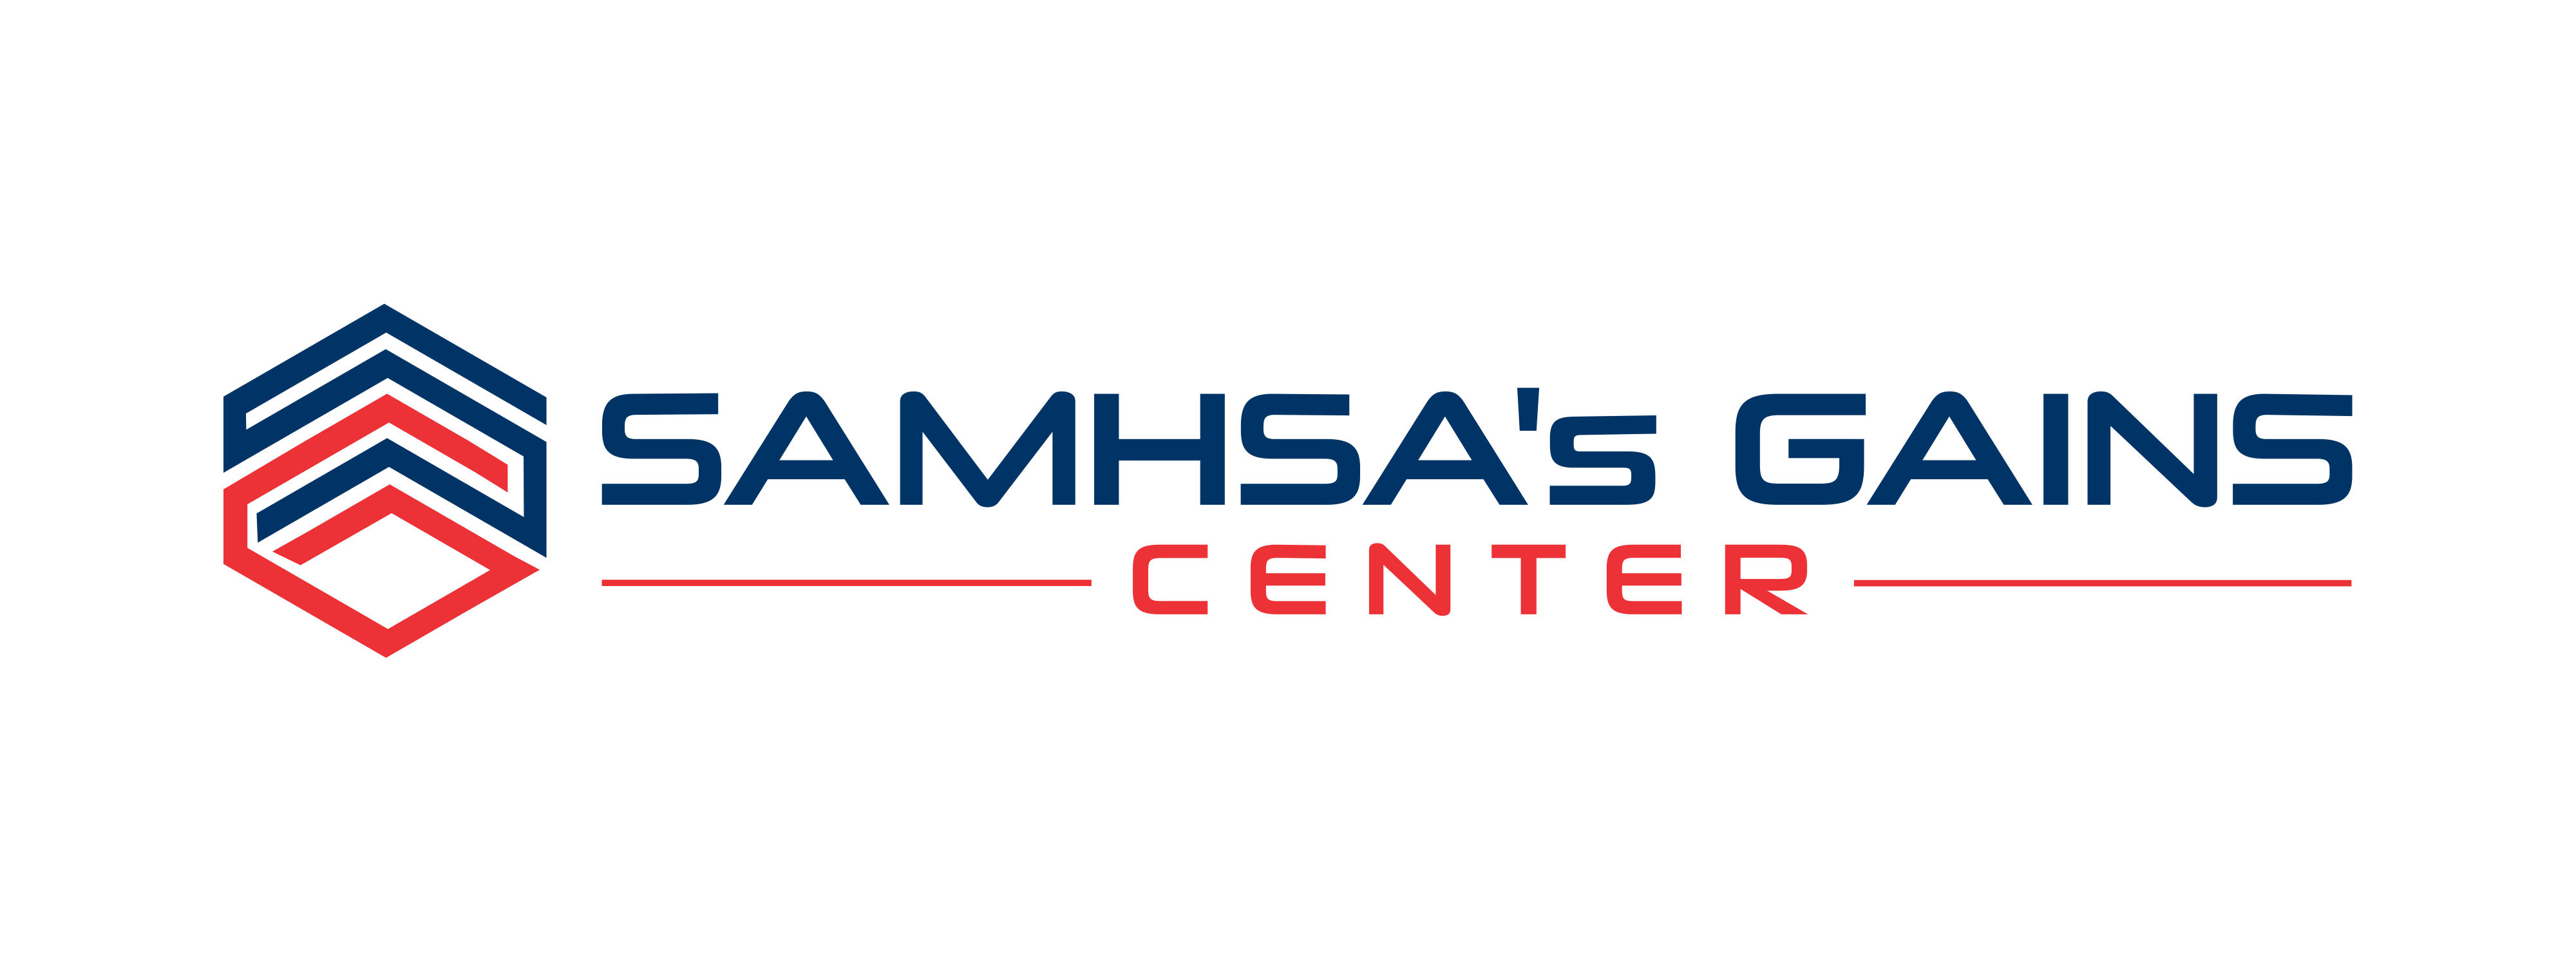 SAMHSA's GAINS Center logo